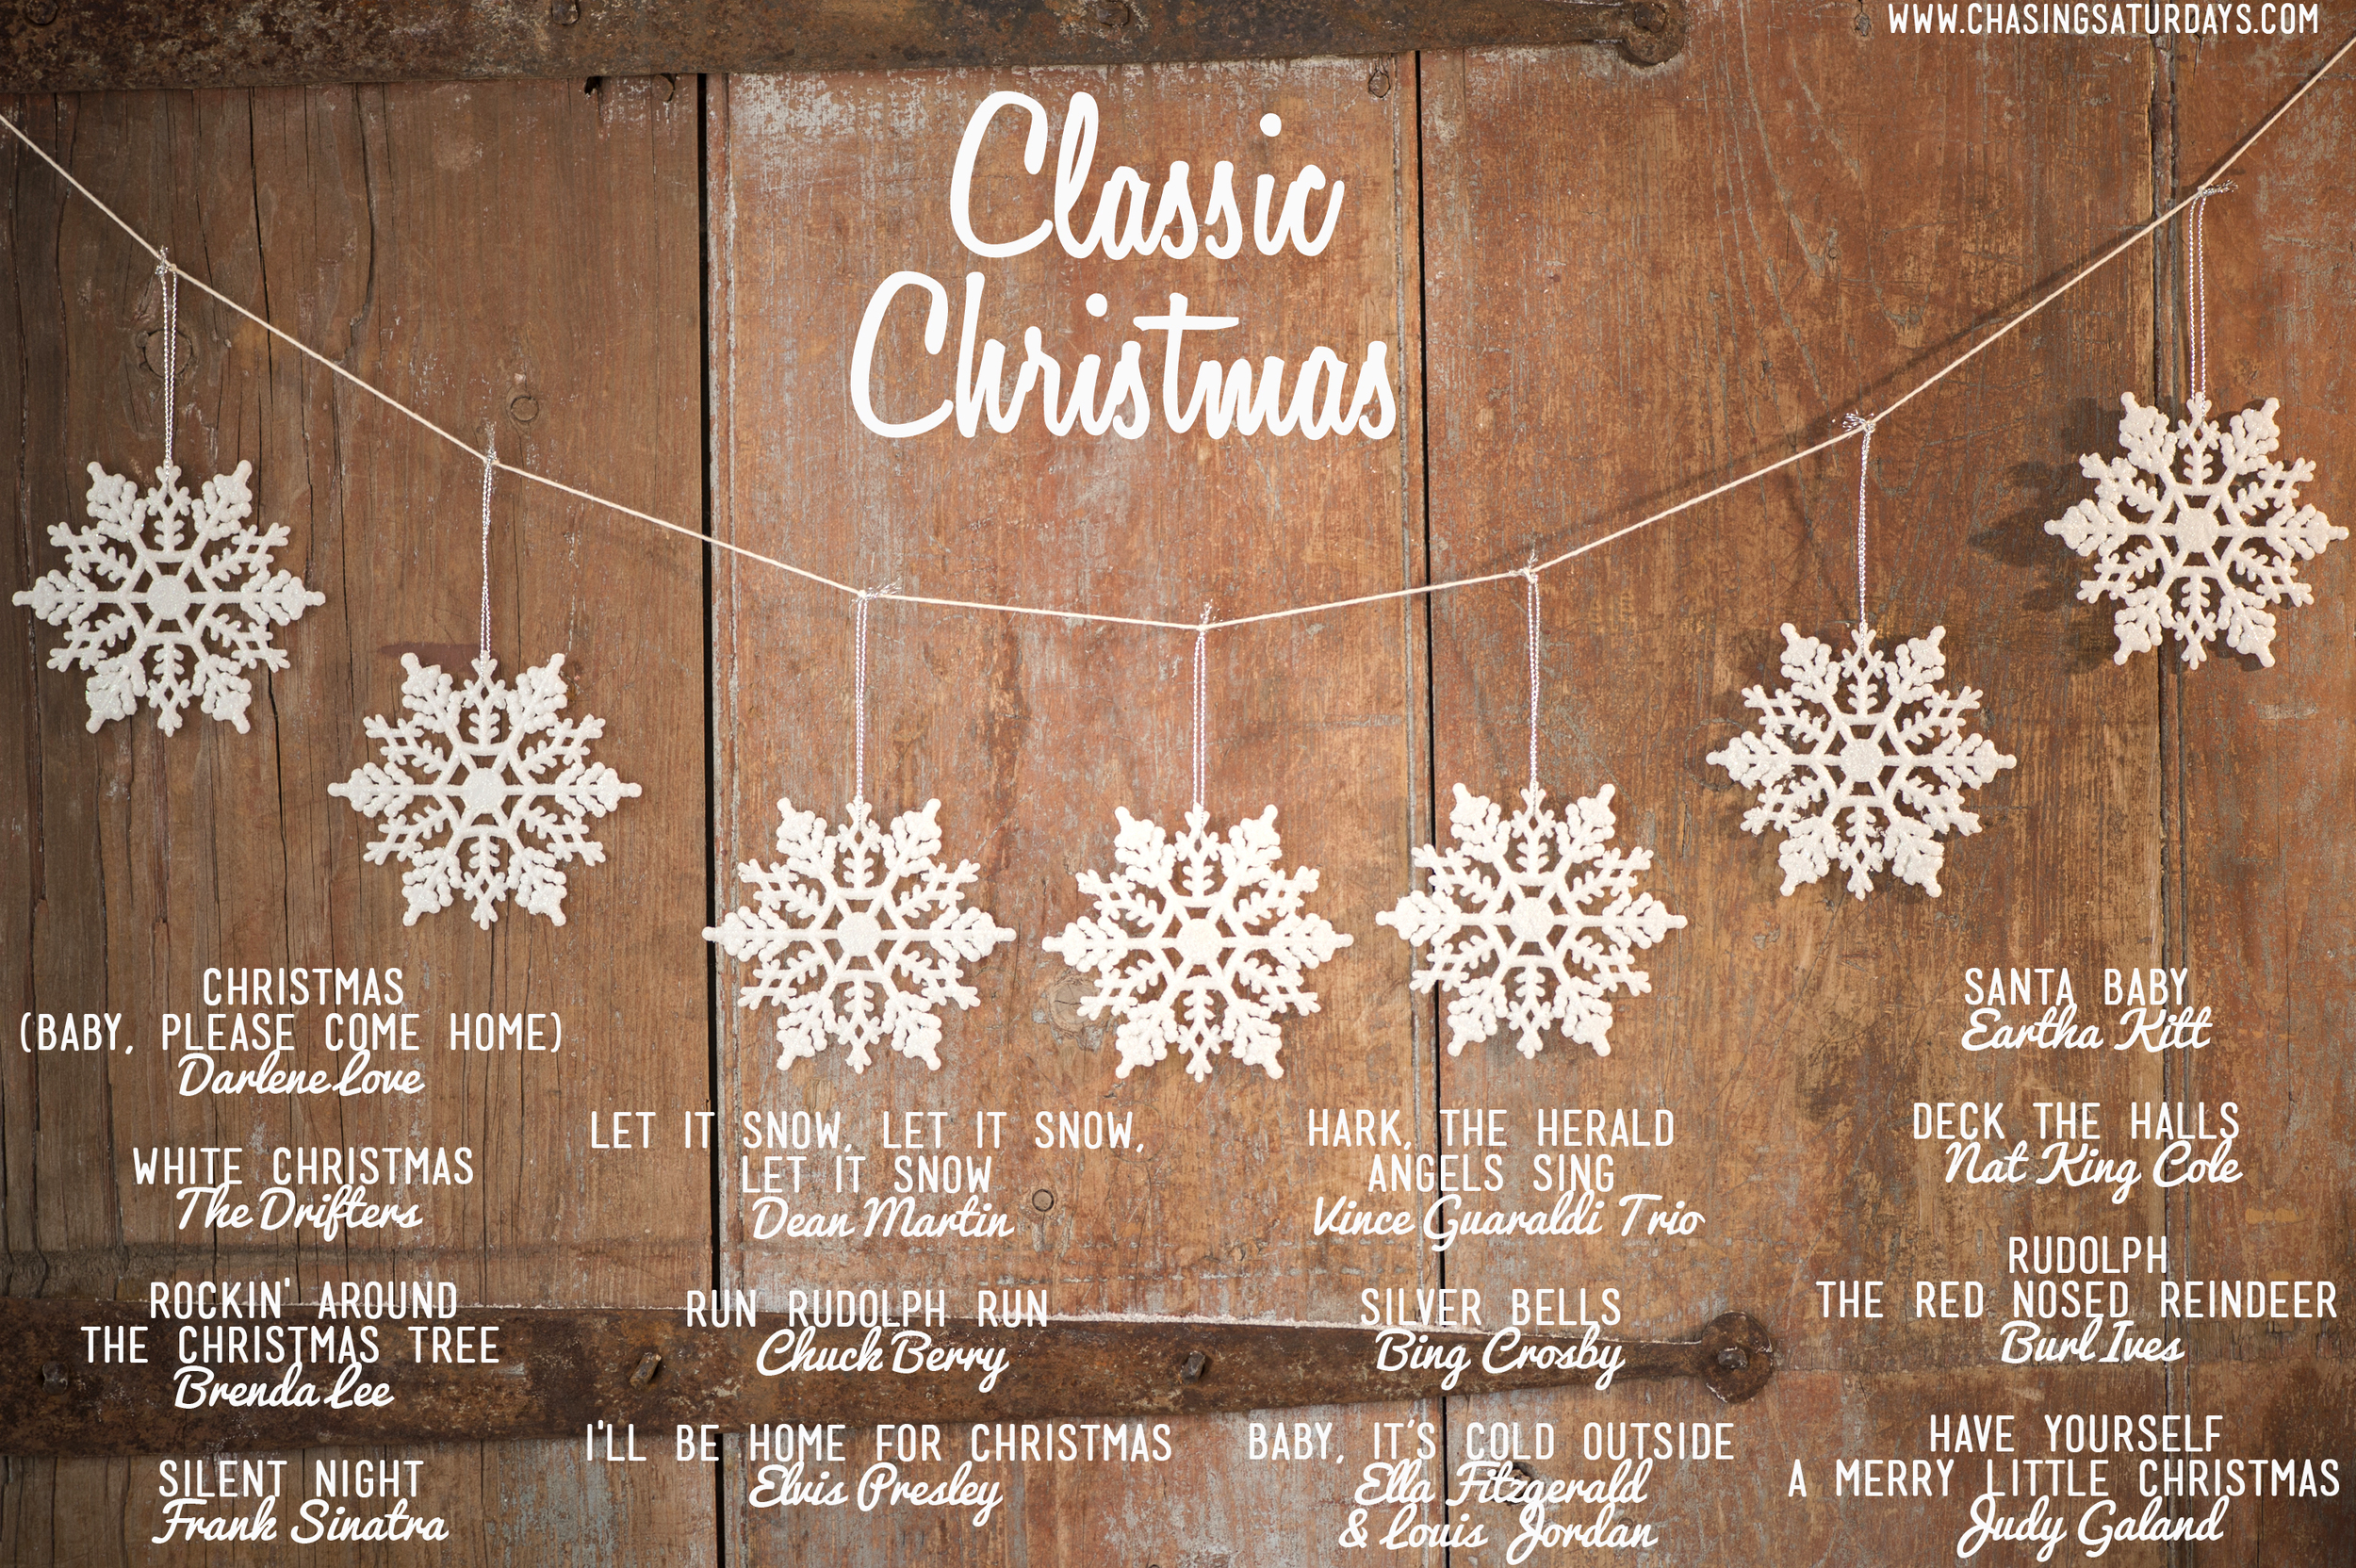 A classic Christmas playlist